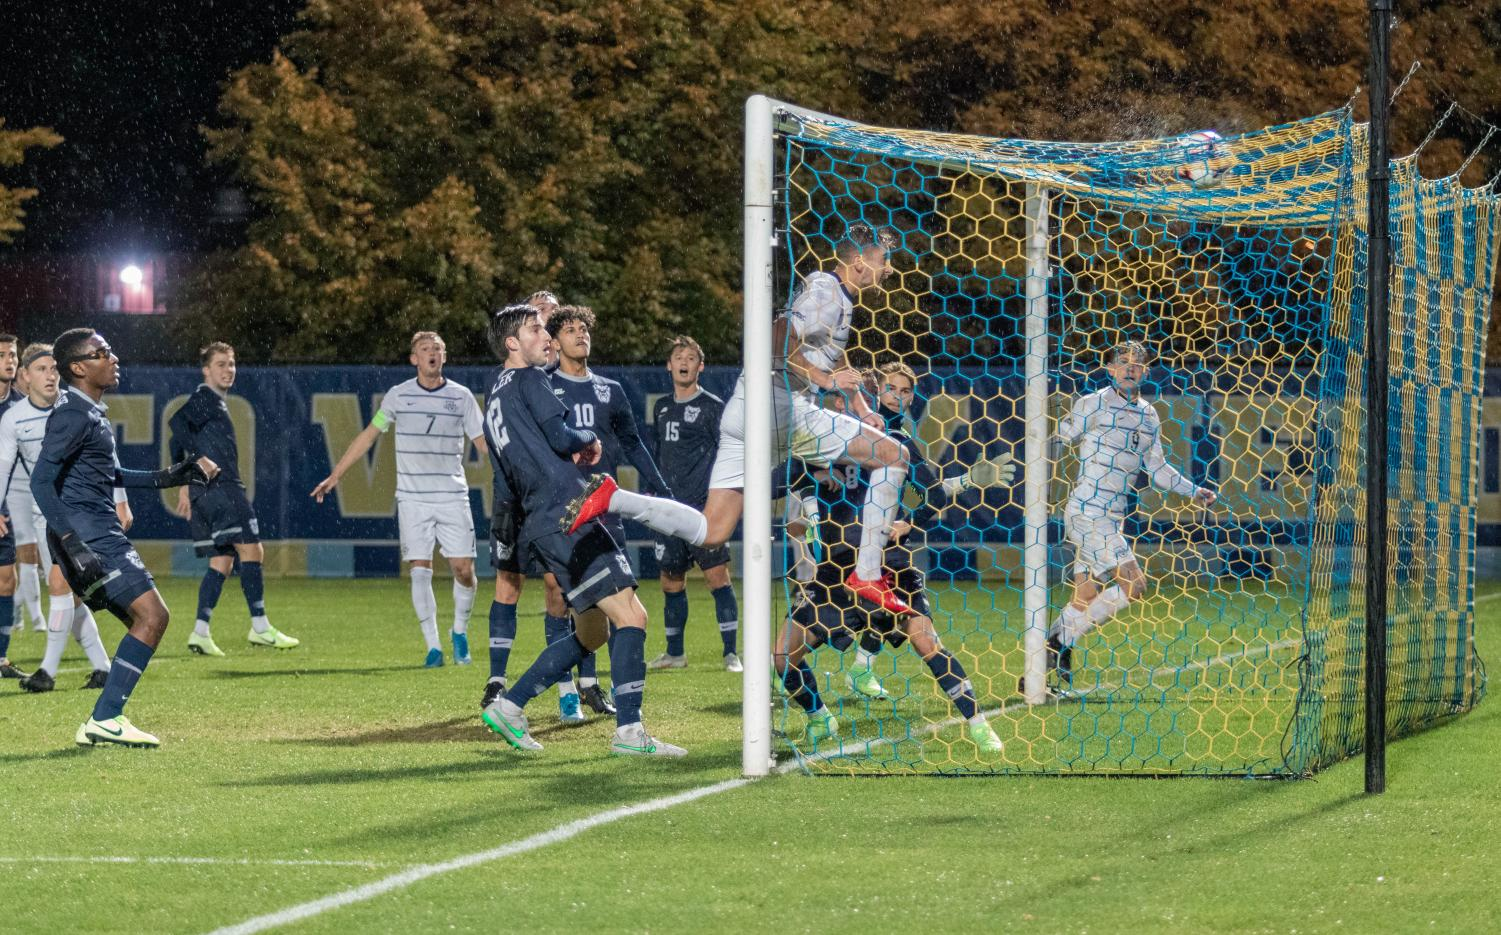 Josh Hancock scores his first collegiate goal Wednesday against Butler at Valley Fields.